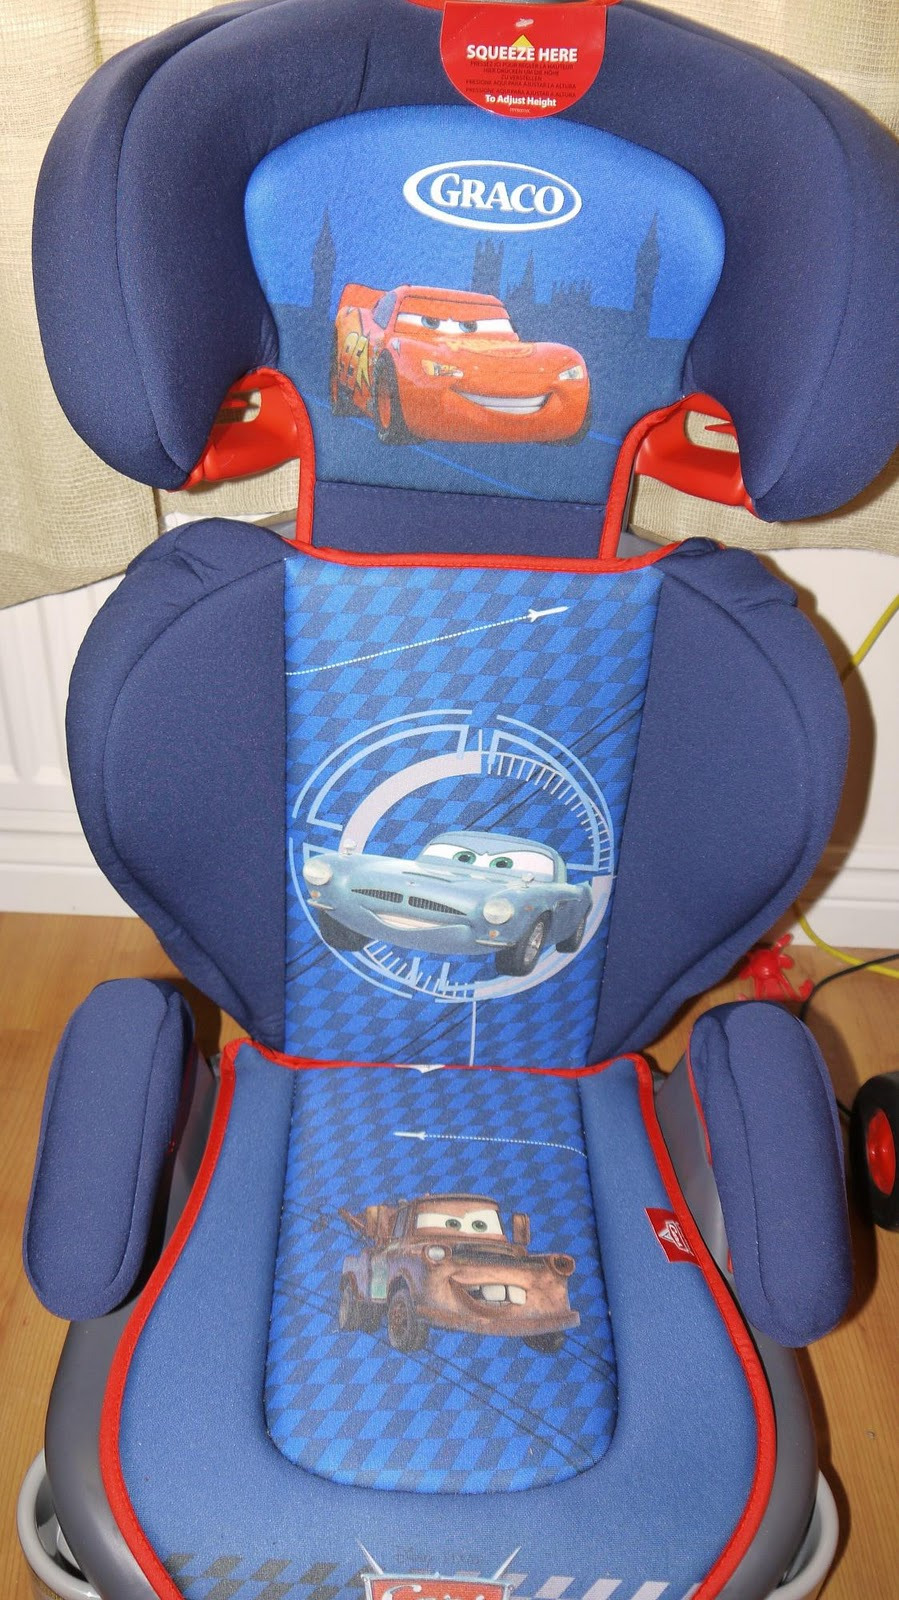 A Car Seat Fit For Lightning McQueen